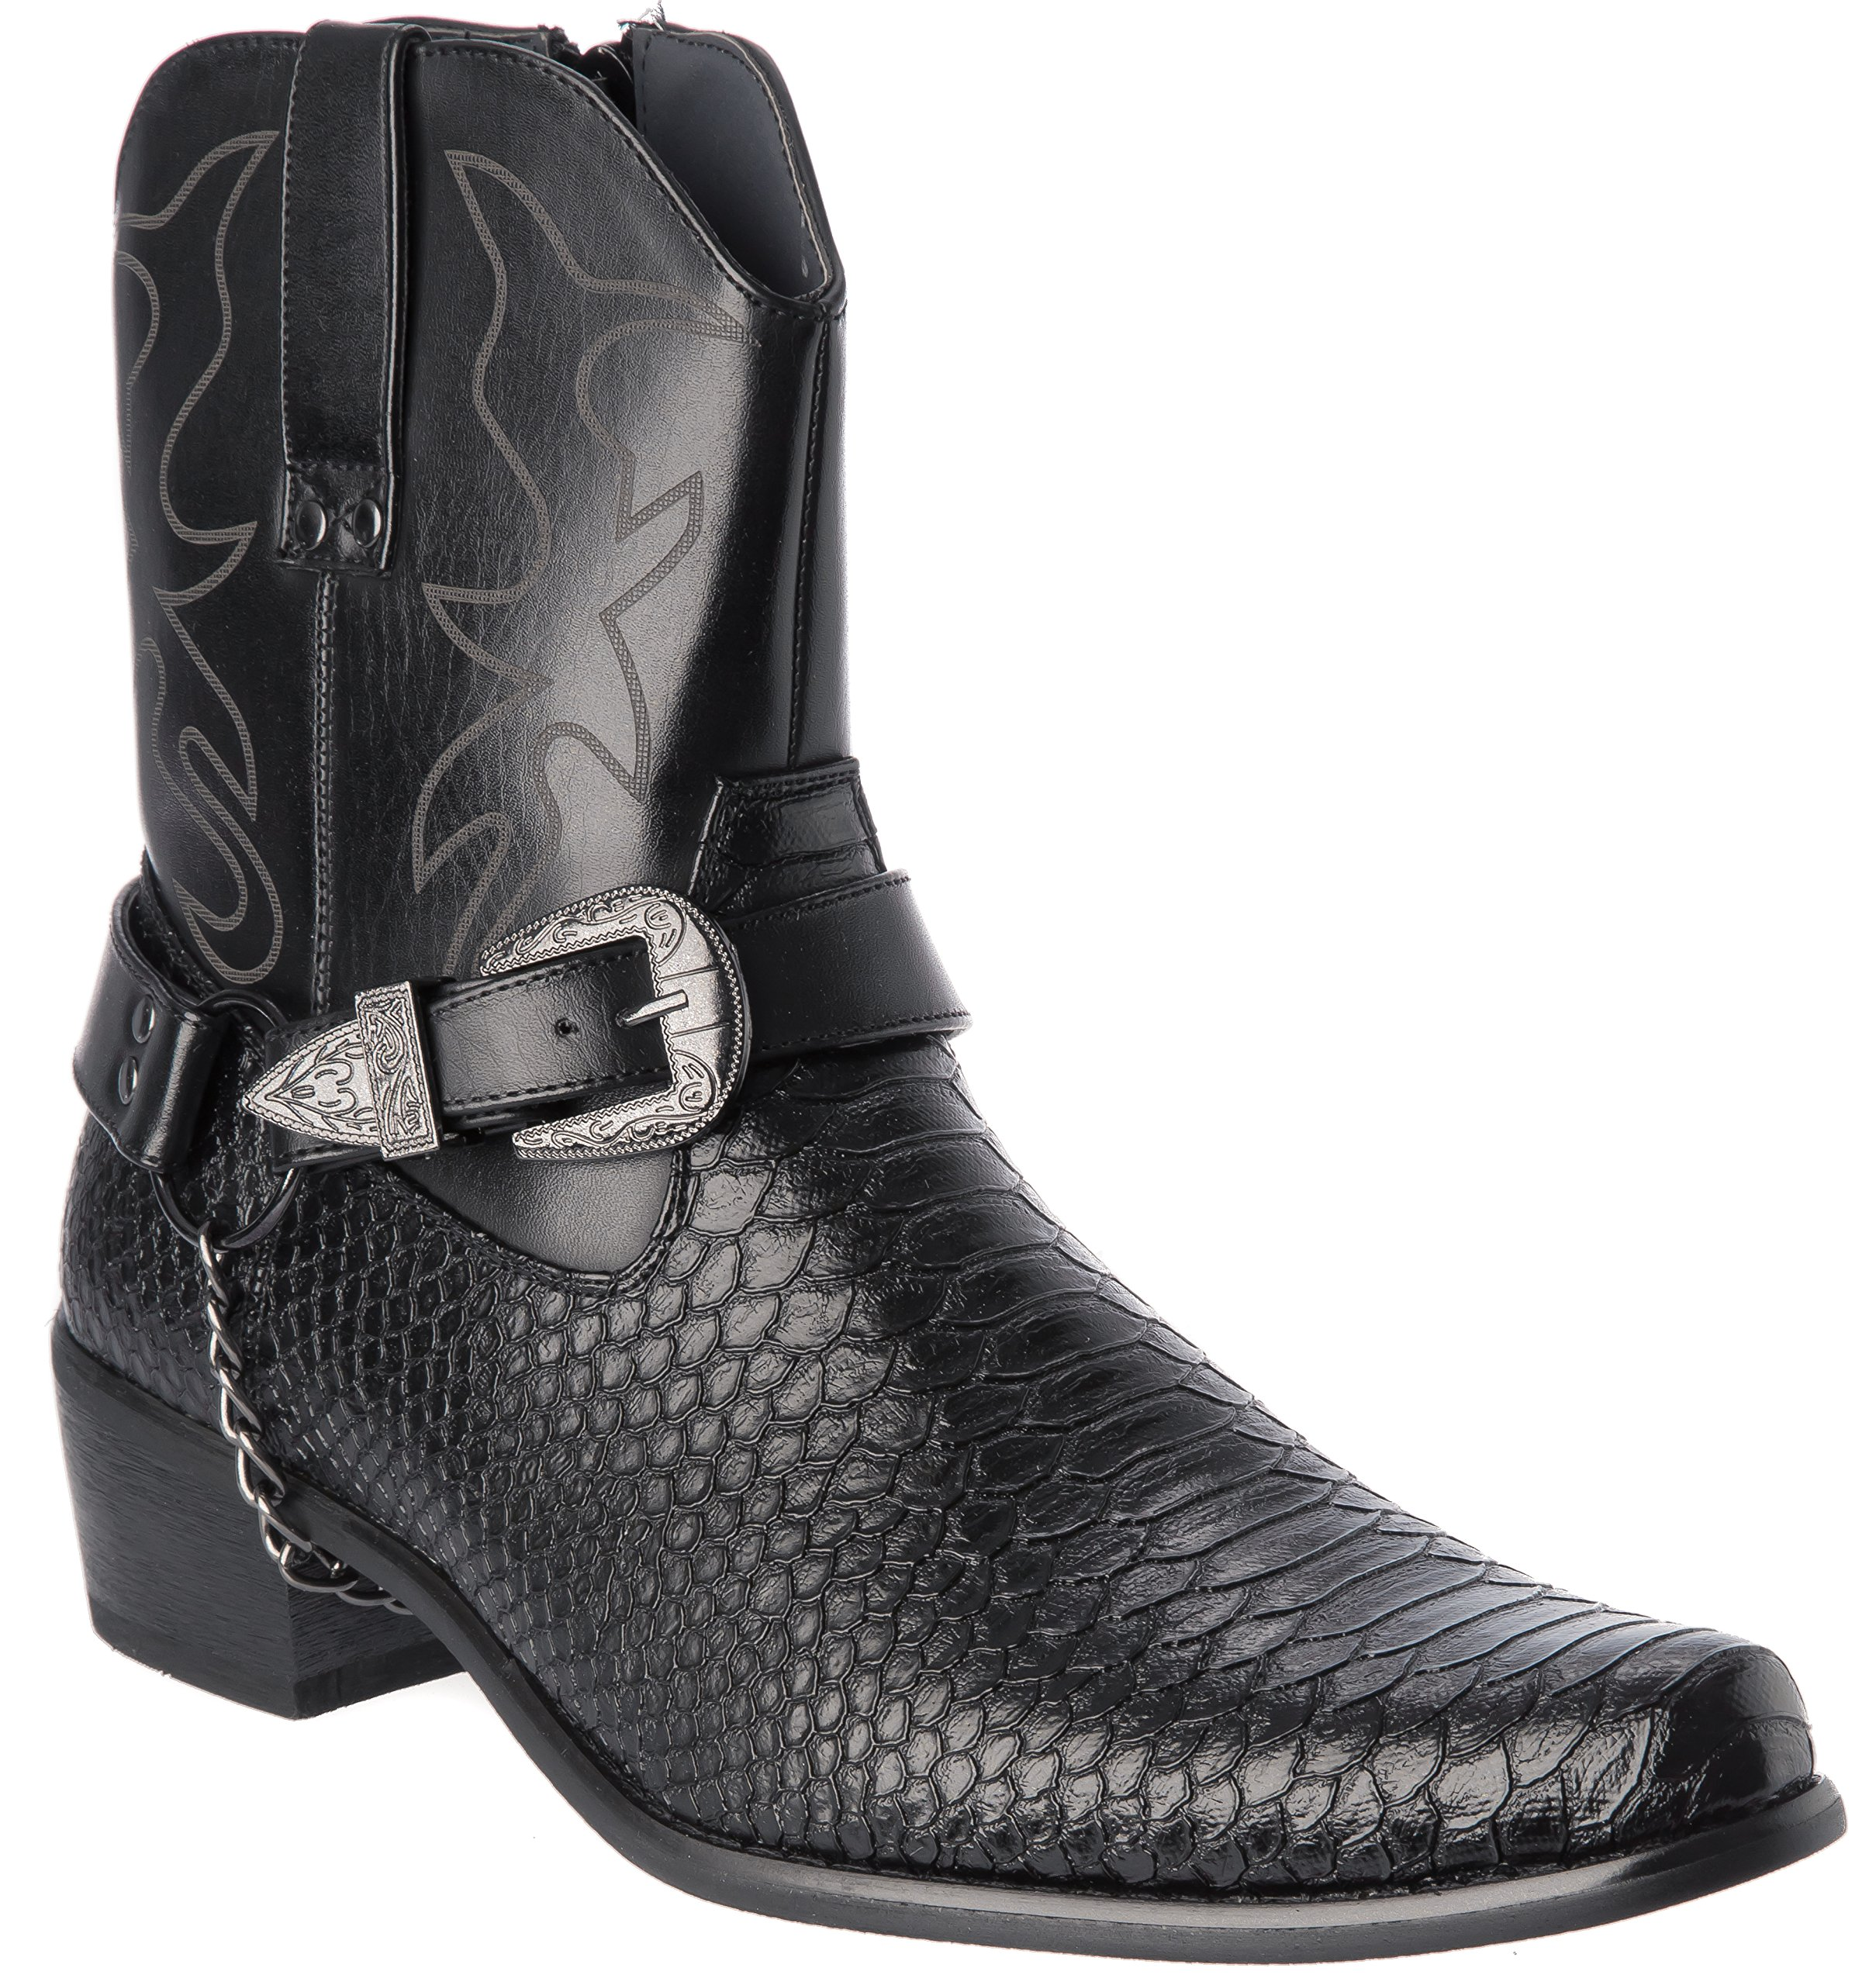 Alberto Fellini Western Style Boots New Upgrade PU-Leather Cowboy Black Dress Shoes Size 9